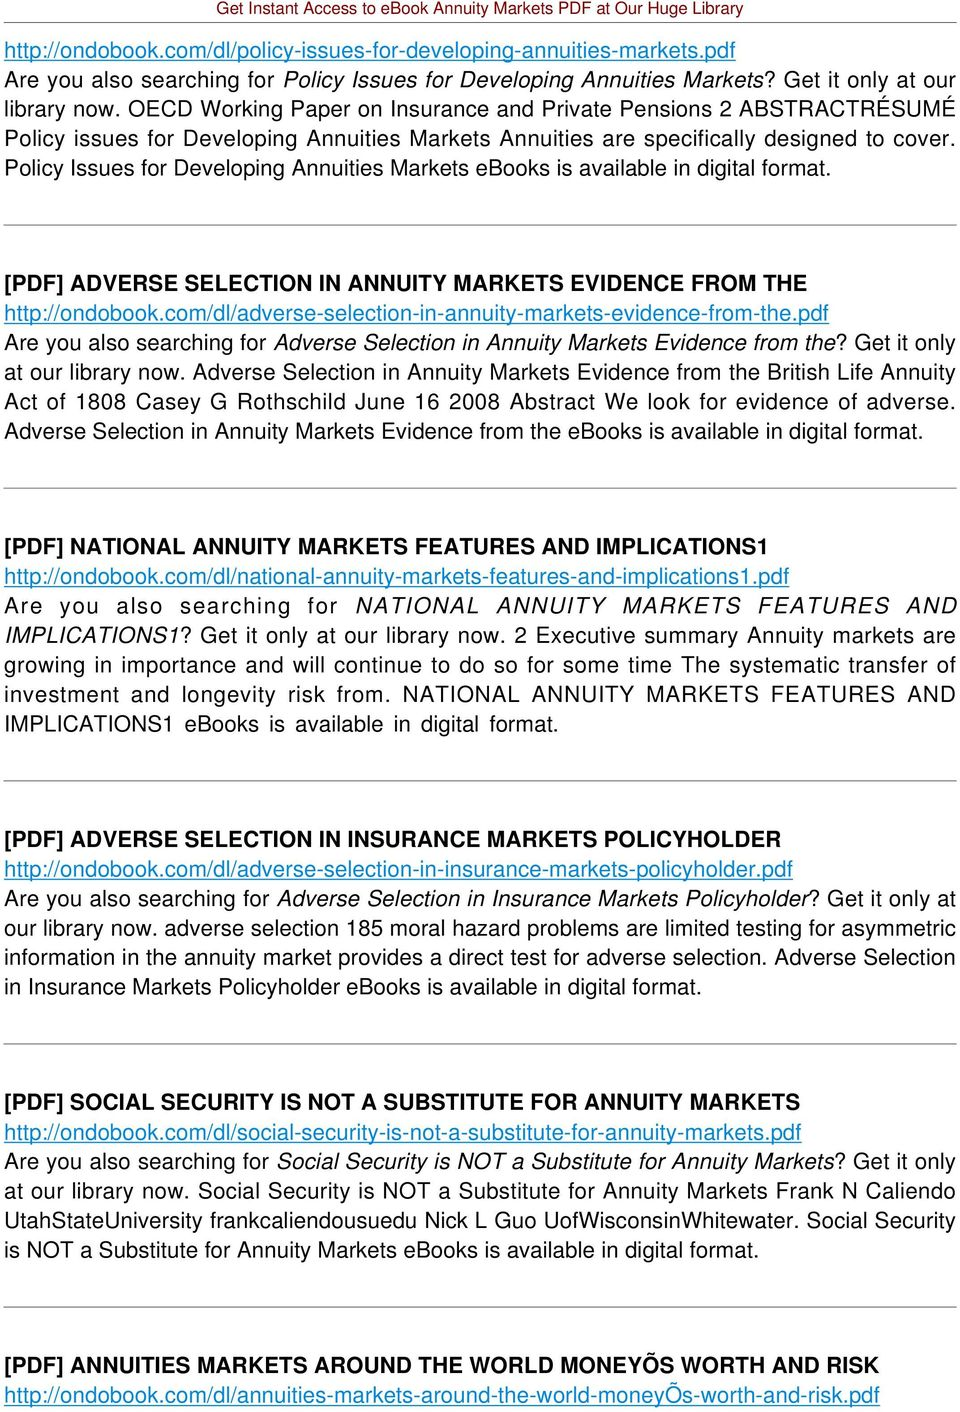 Policy Issues for Developing Annuities Markets ebooks is available in digital format. [PDF] ADVERSE SELECTION IN ANNUITY MARKETS EVIDENCE FROM THE http://ondobook.